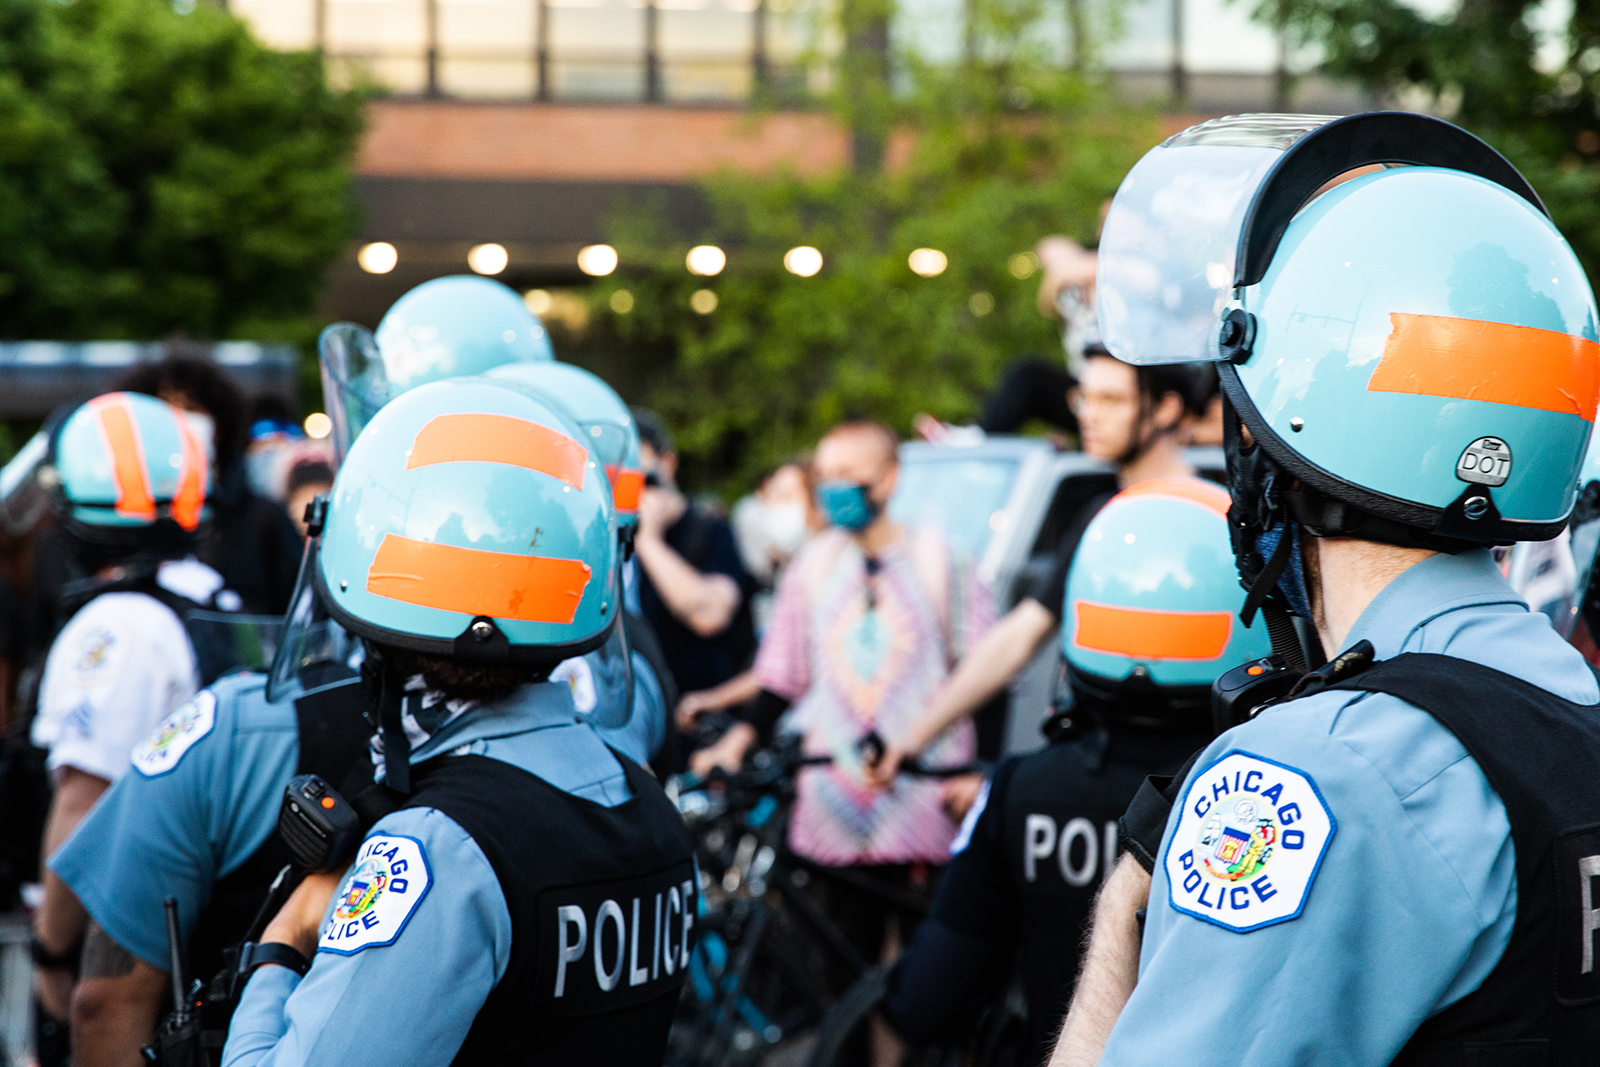 Chicago Police Department officers gather as curfew nears during a demonstration on June 6, in Chicago.